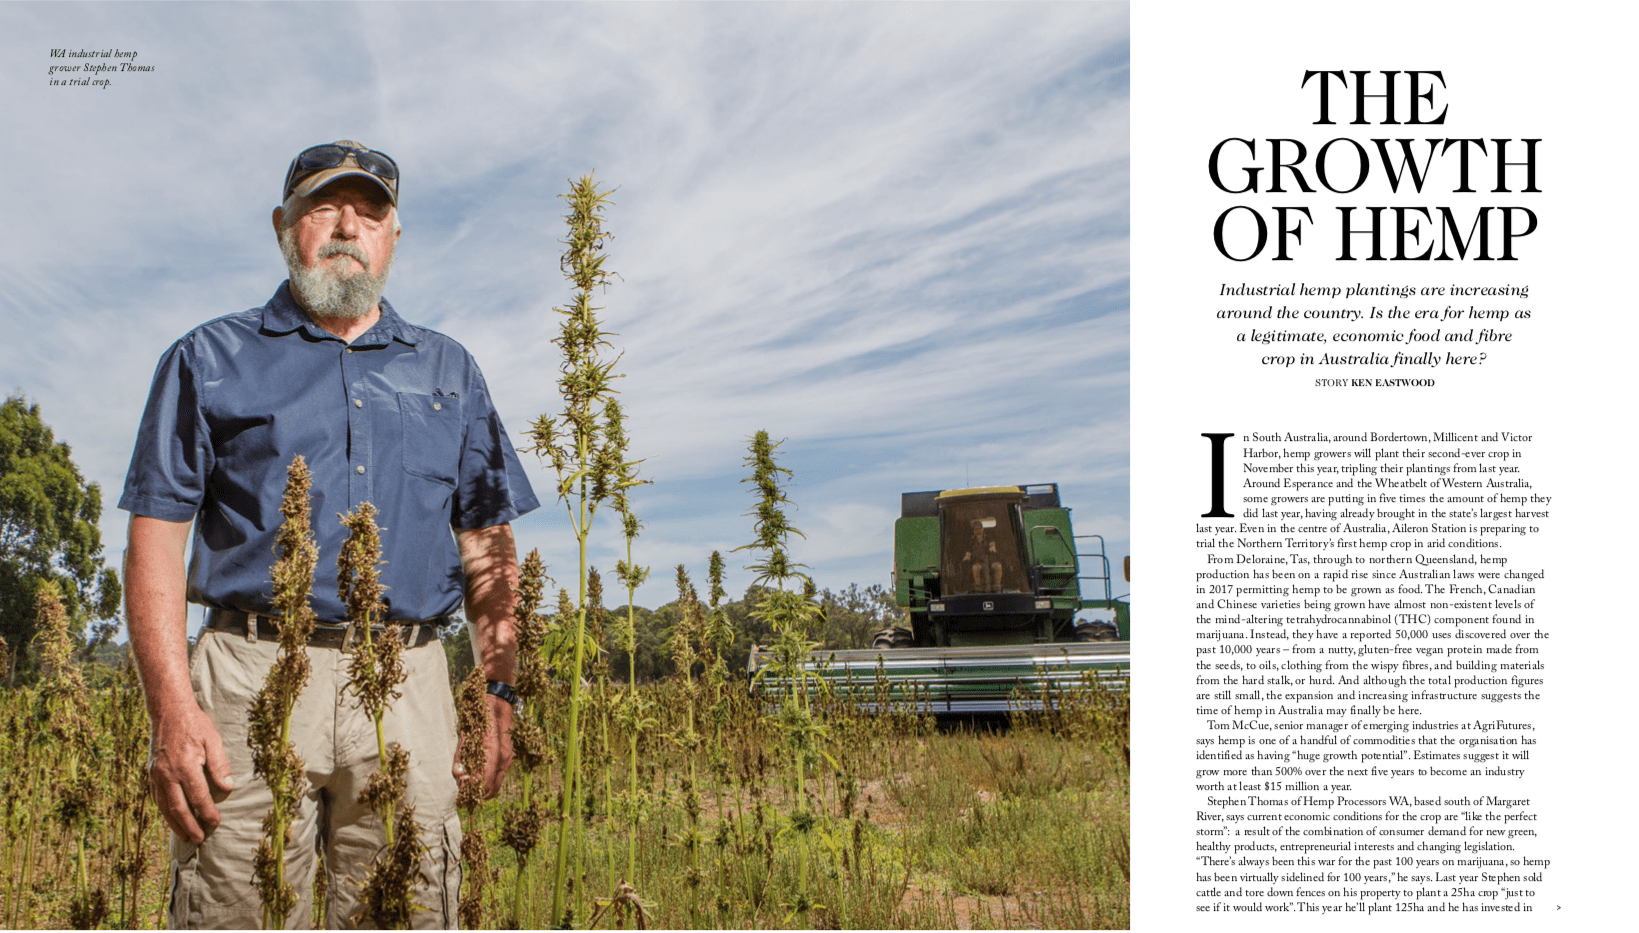 RM Williams reports on growing hemp